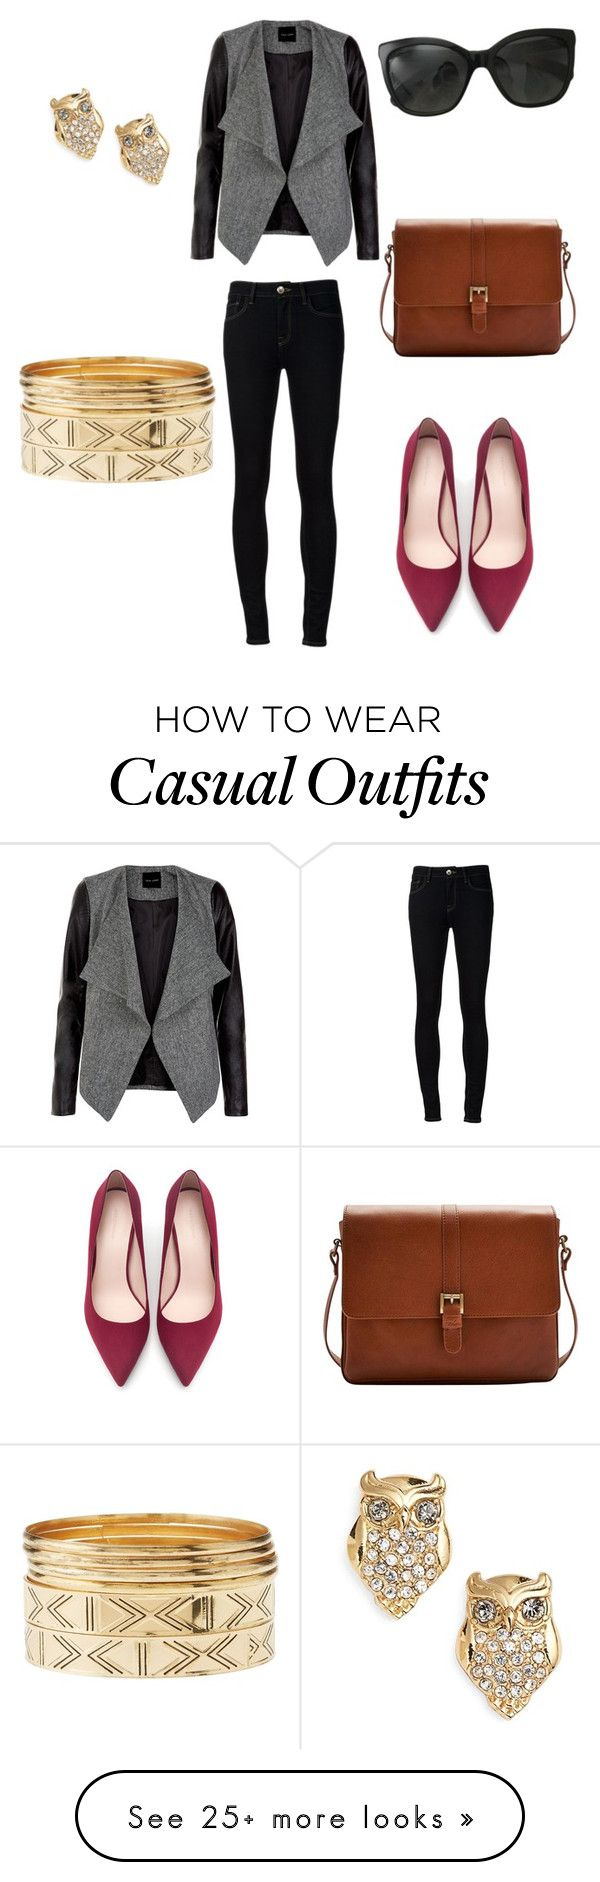 """""""outfit casual"""" by camila-alejandra-letelier on Polyvore featuring Kate Spade, Chanel, Ström, Zara, Joules and Charlotte Russe"""